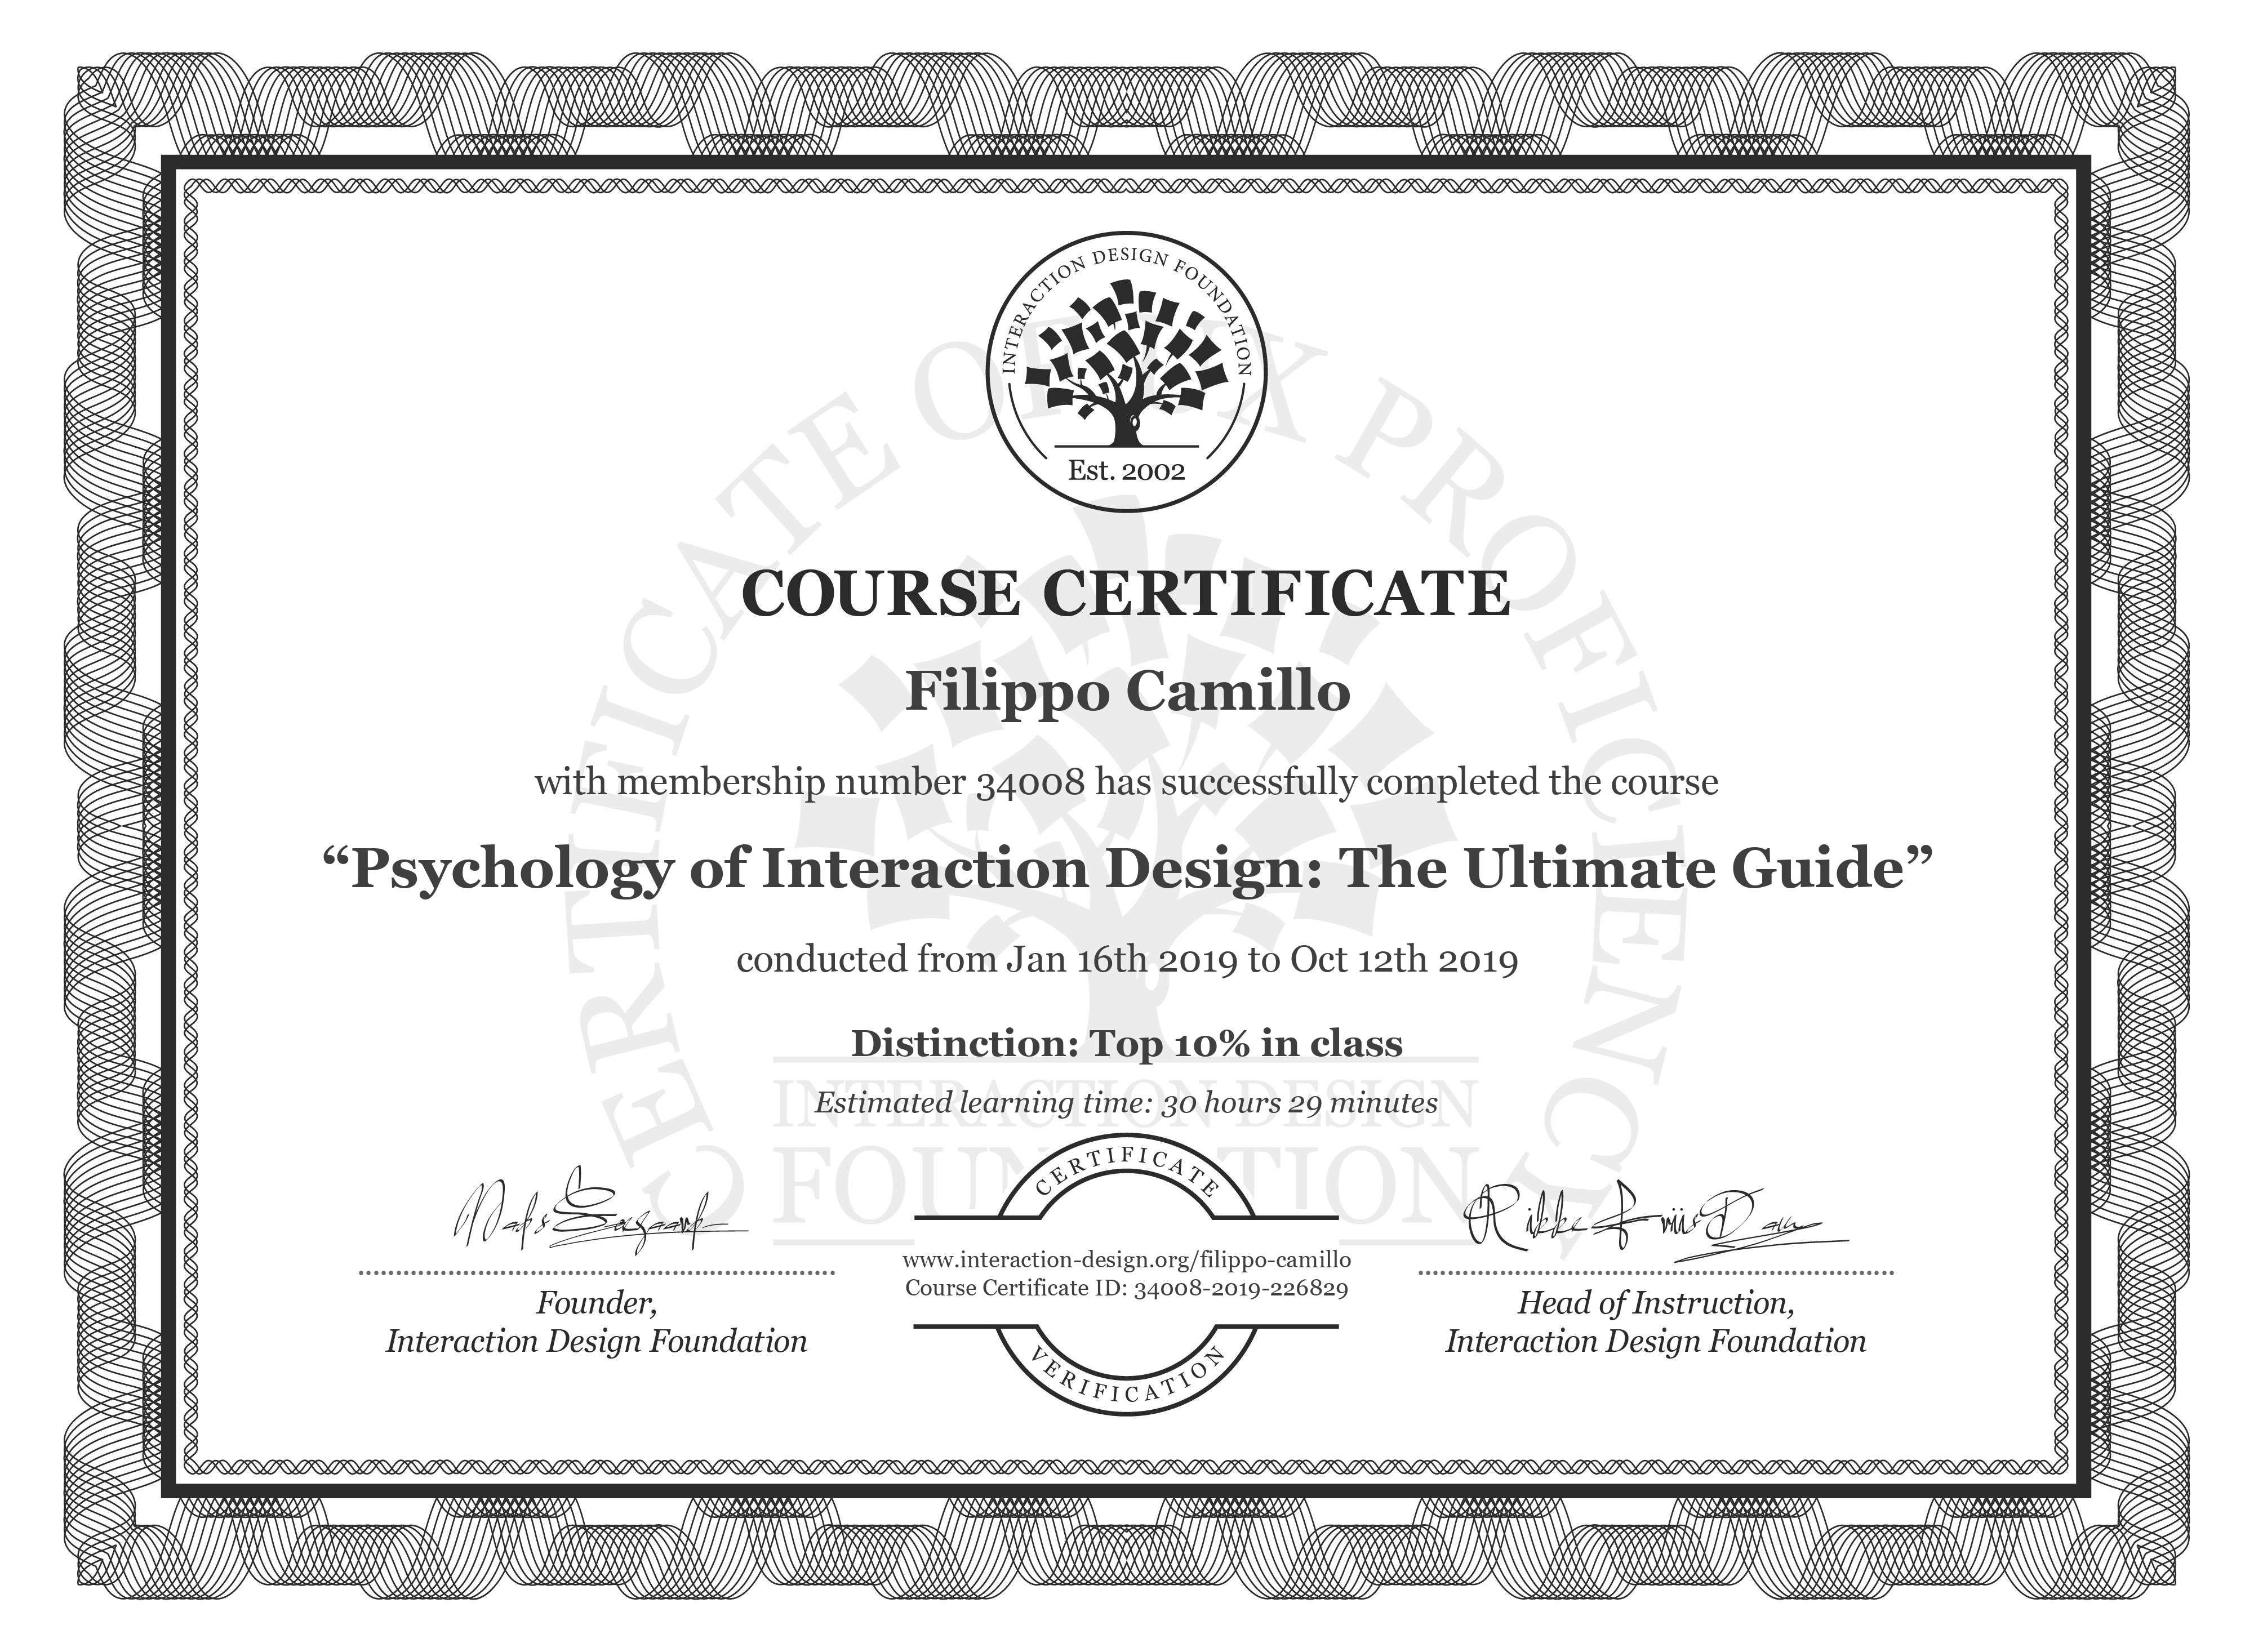 Filippo Camillo's Course Certificate: Psychology of Interaction Design: The Ultimate Guide